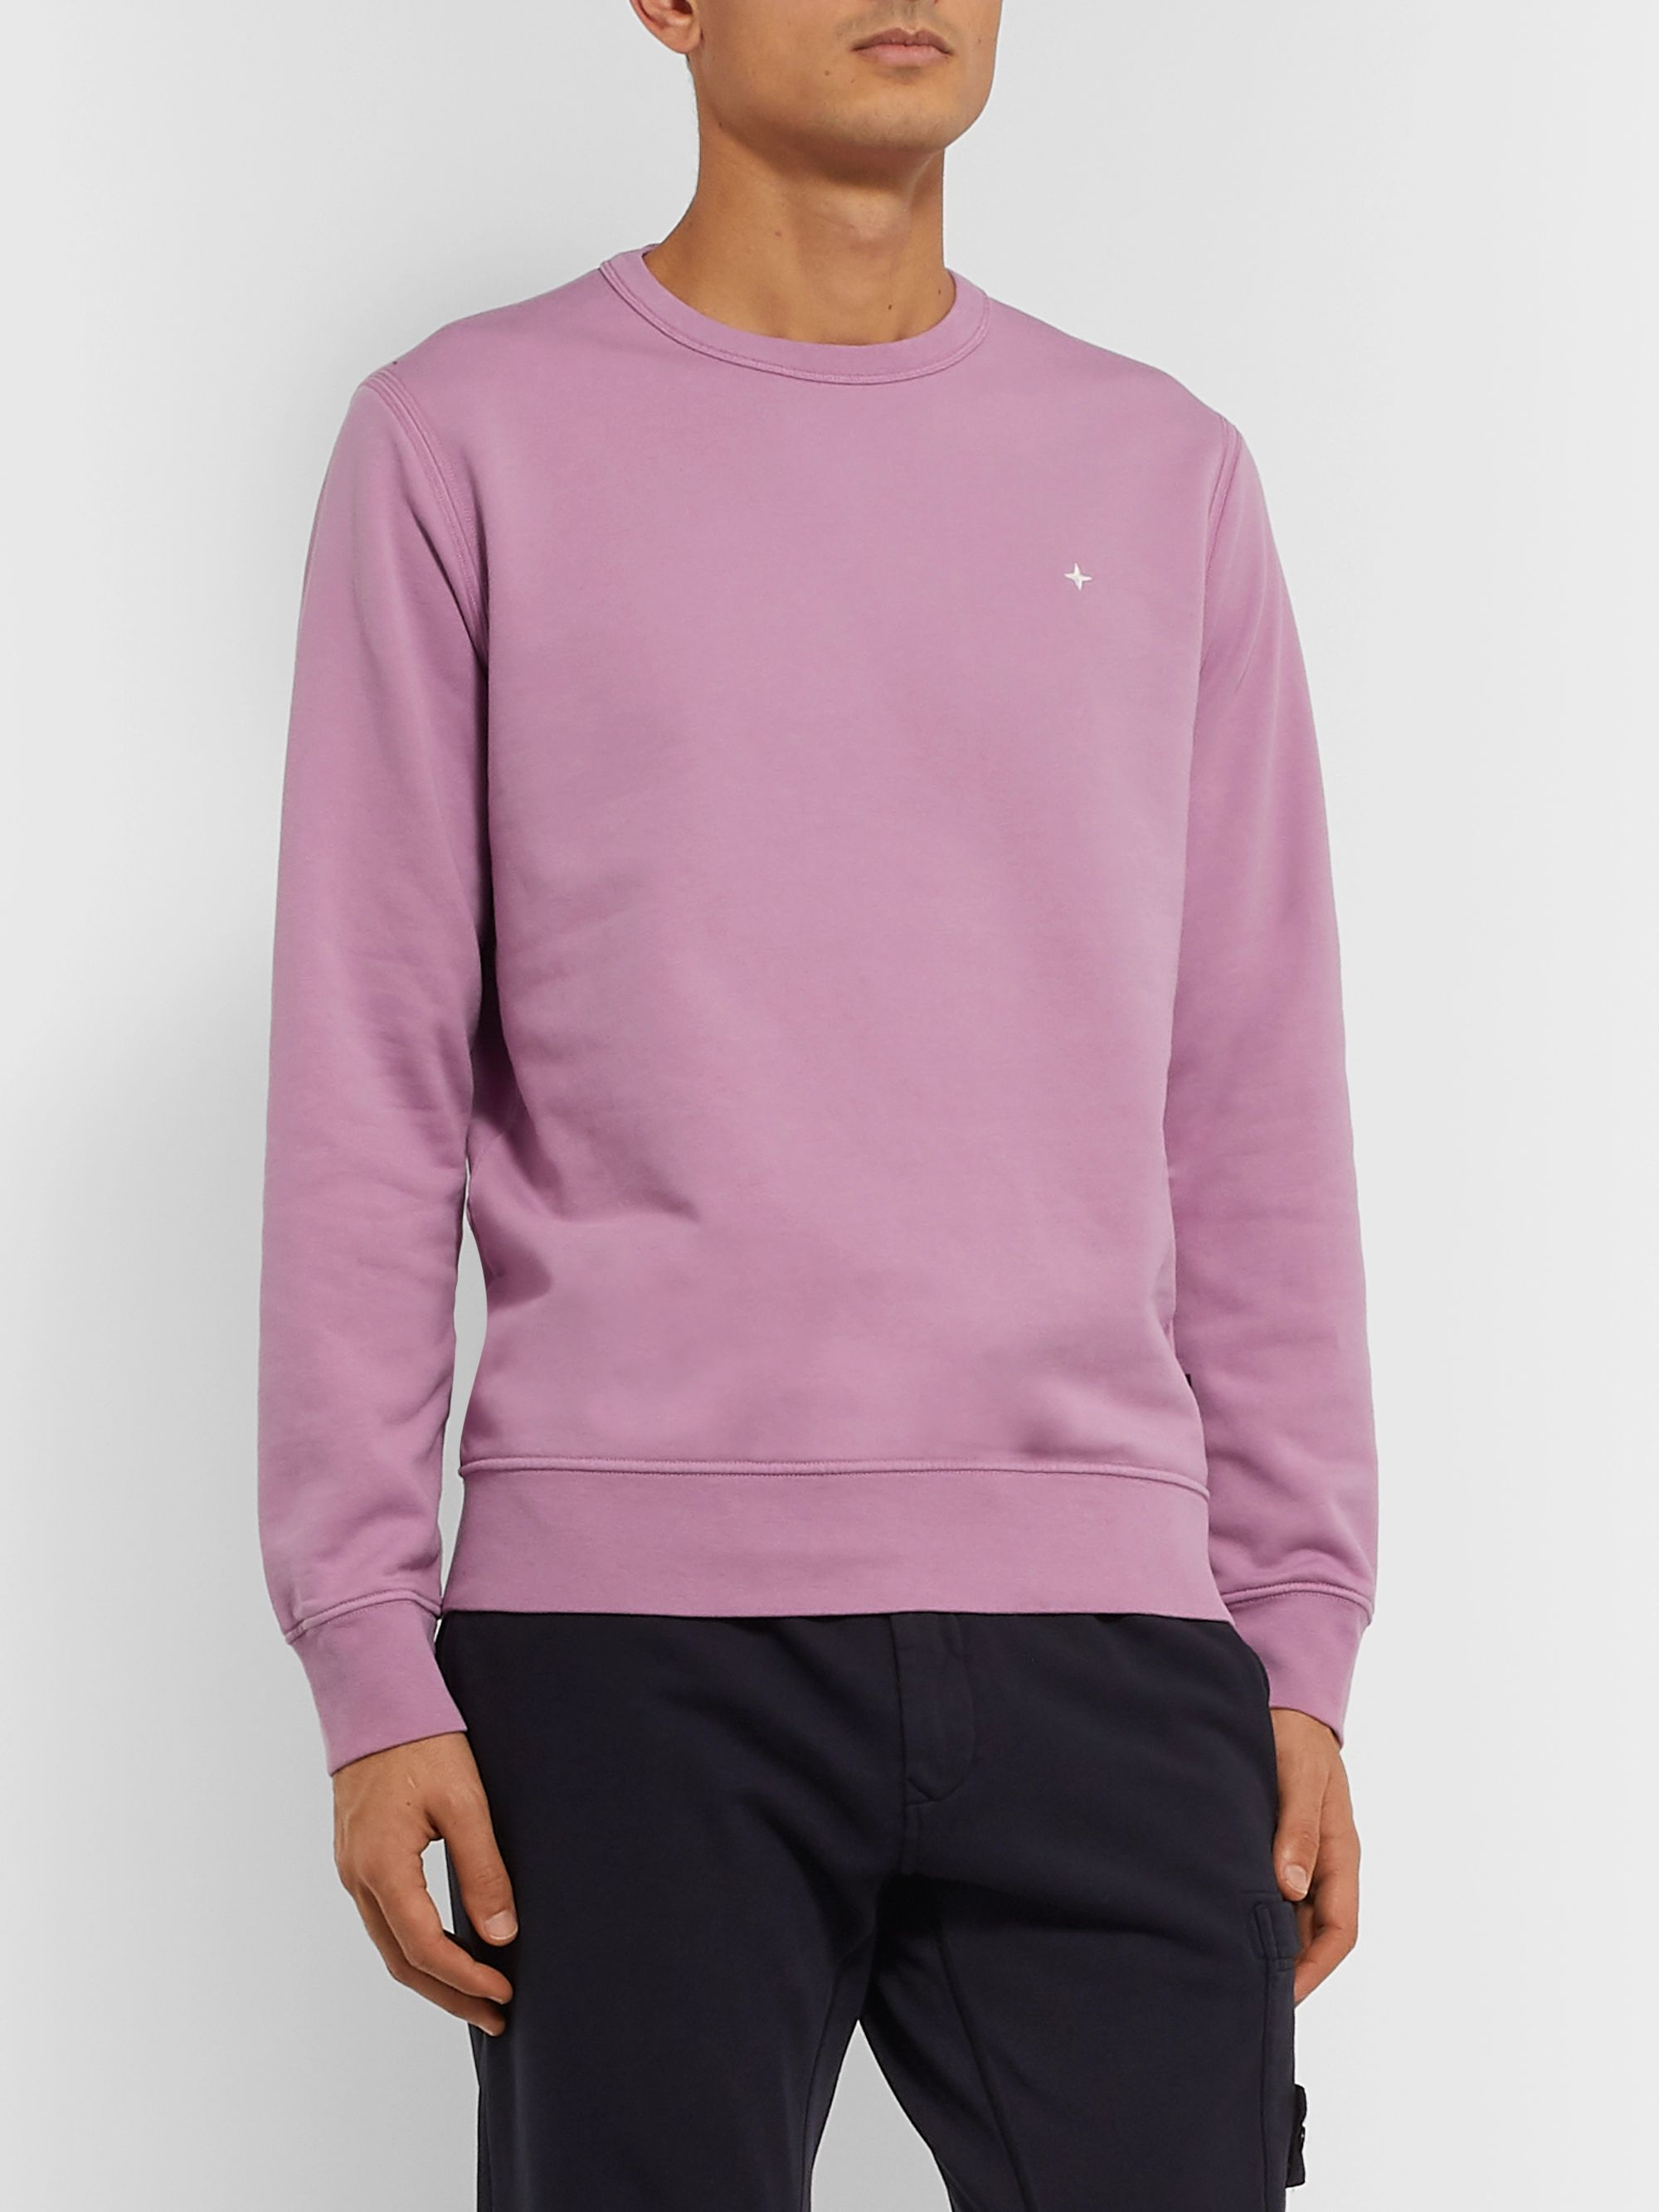 Stone Island Logo-Embroidered Garment-Dyed Loopback Cotton-Jersey Sweatshirt